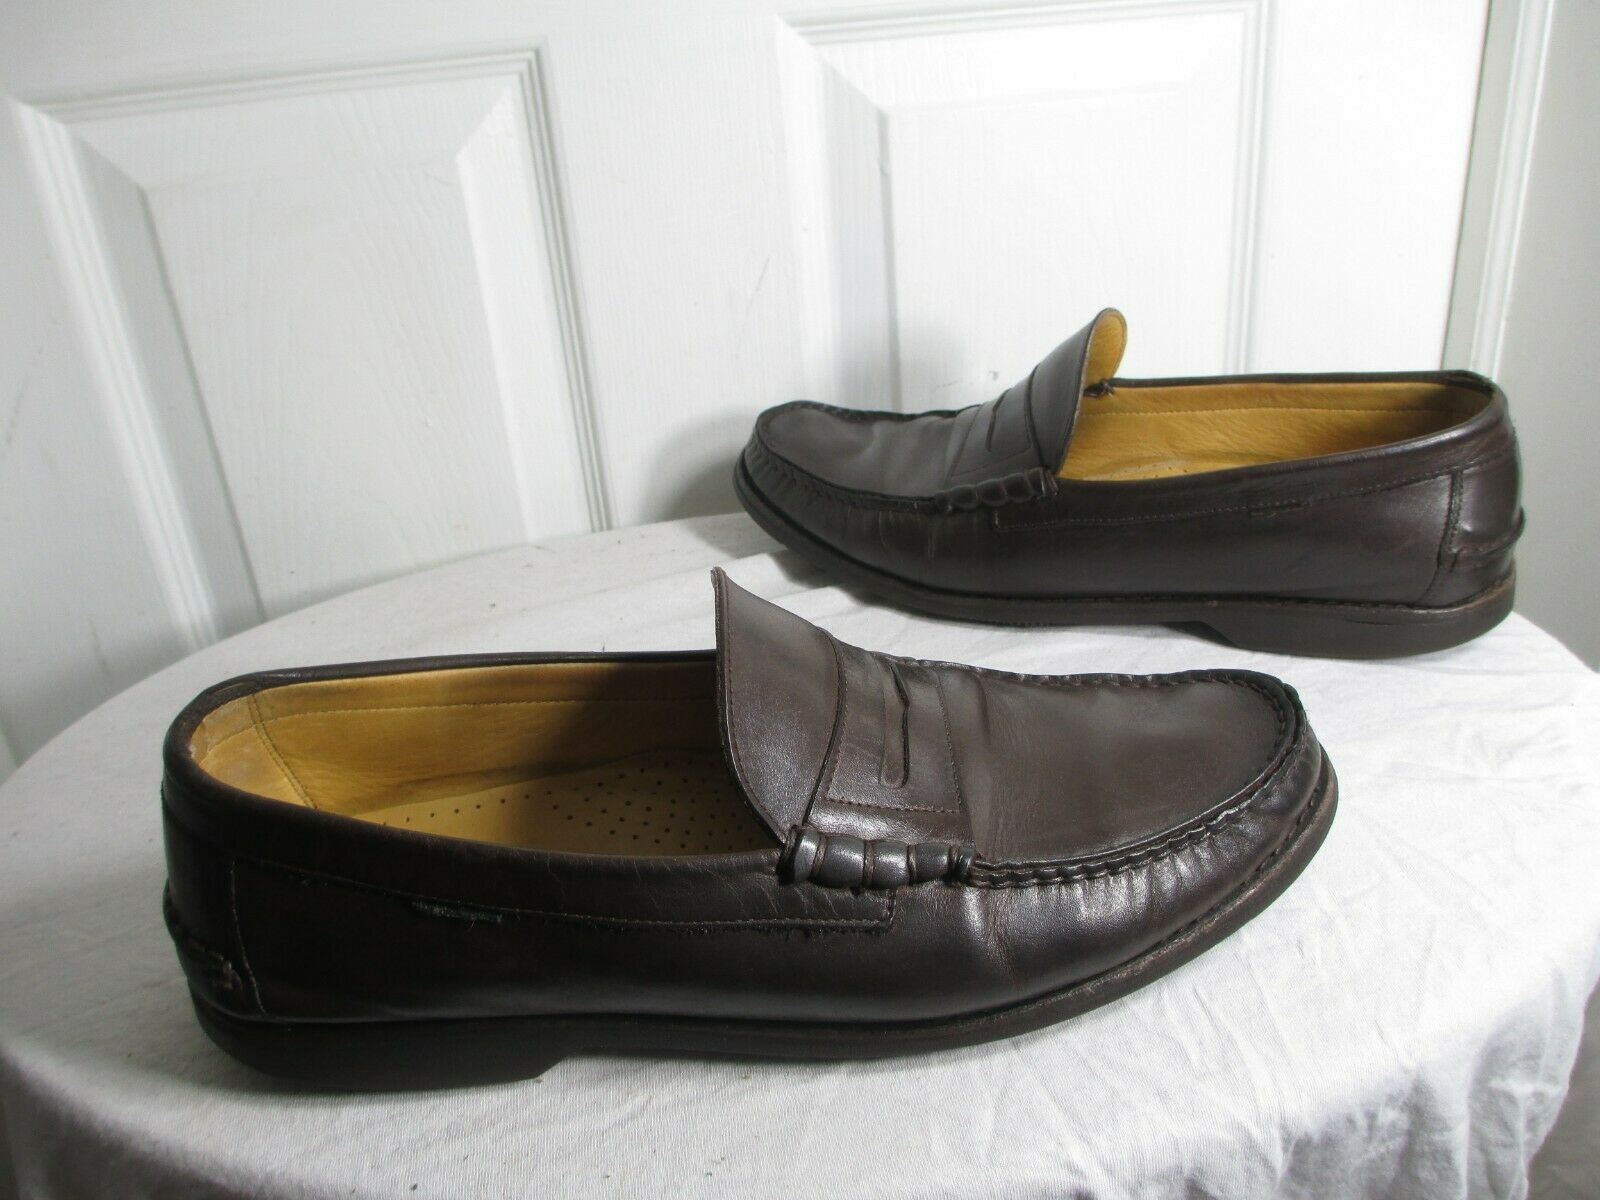 PARABOOT MEN'S BROWN LEATHER MOCASSIN LOAFERS UK 11 US 12 HANDCRAFTED IN SPAIN